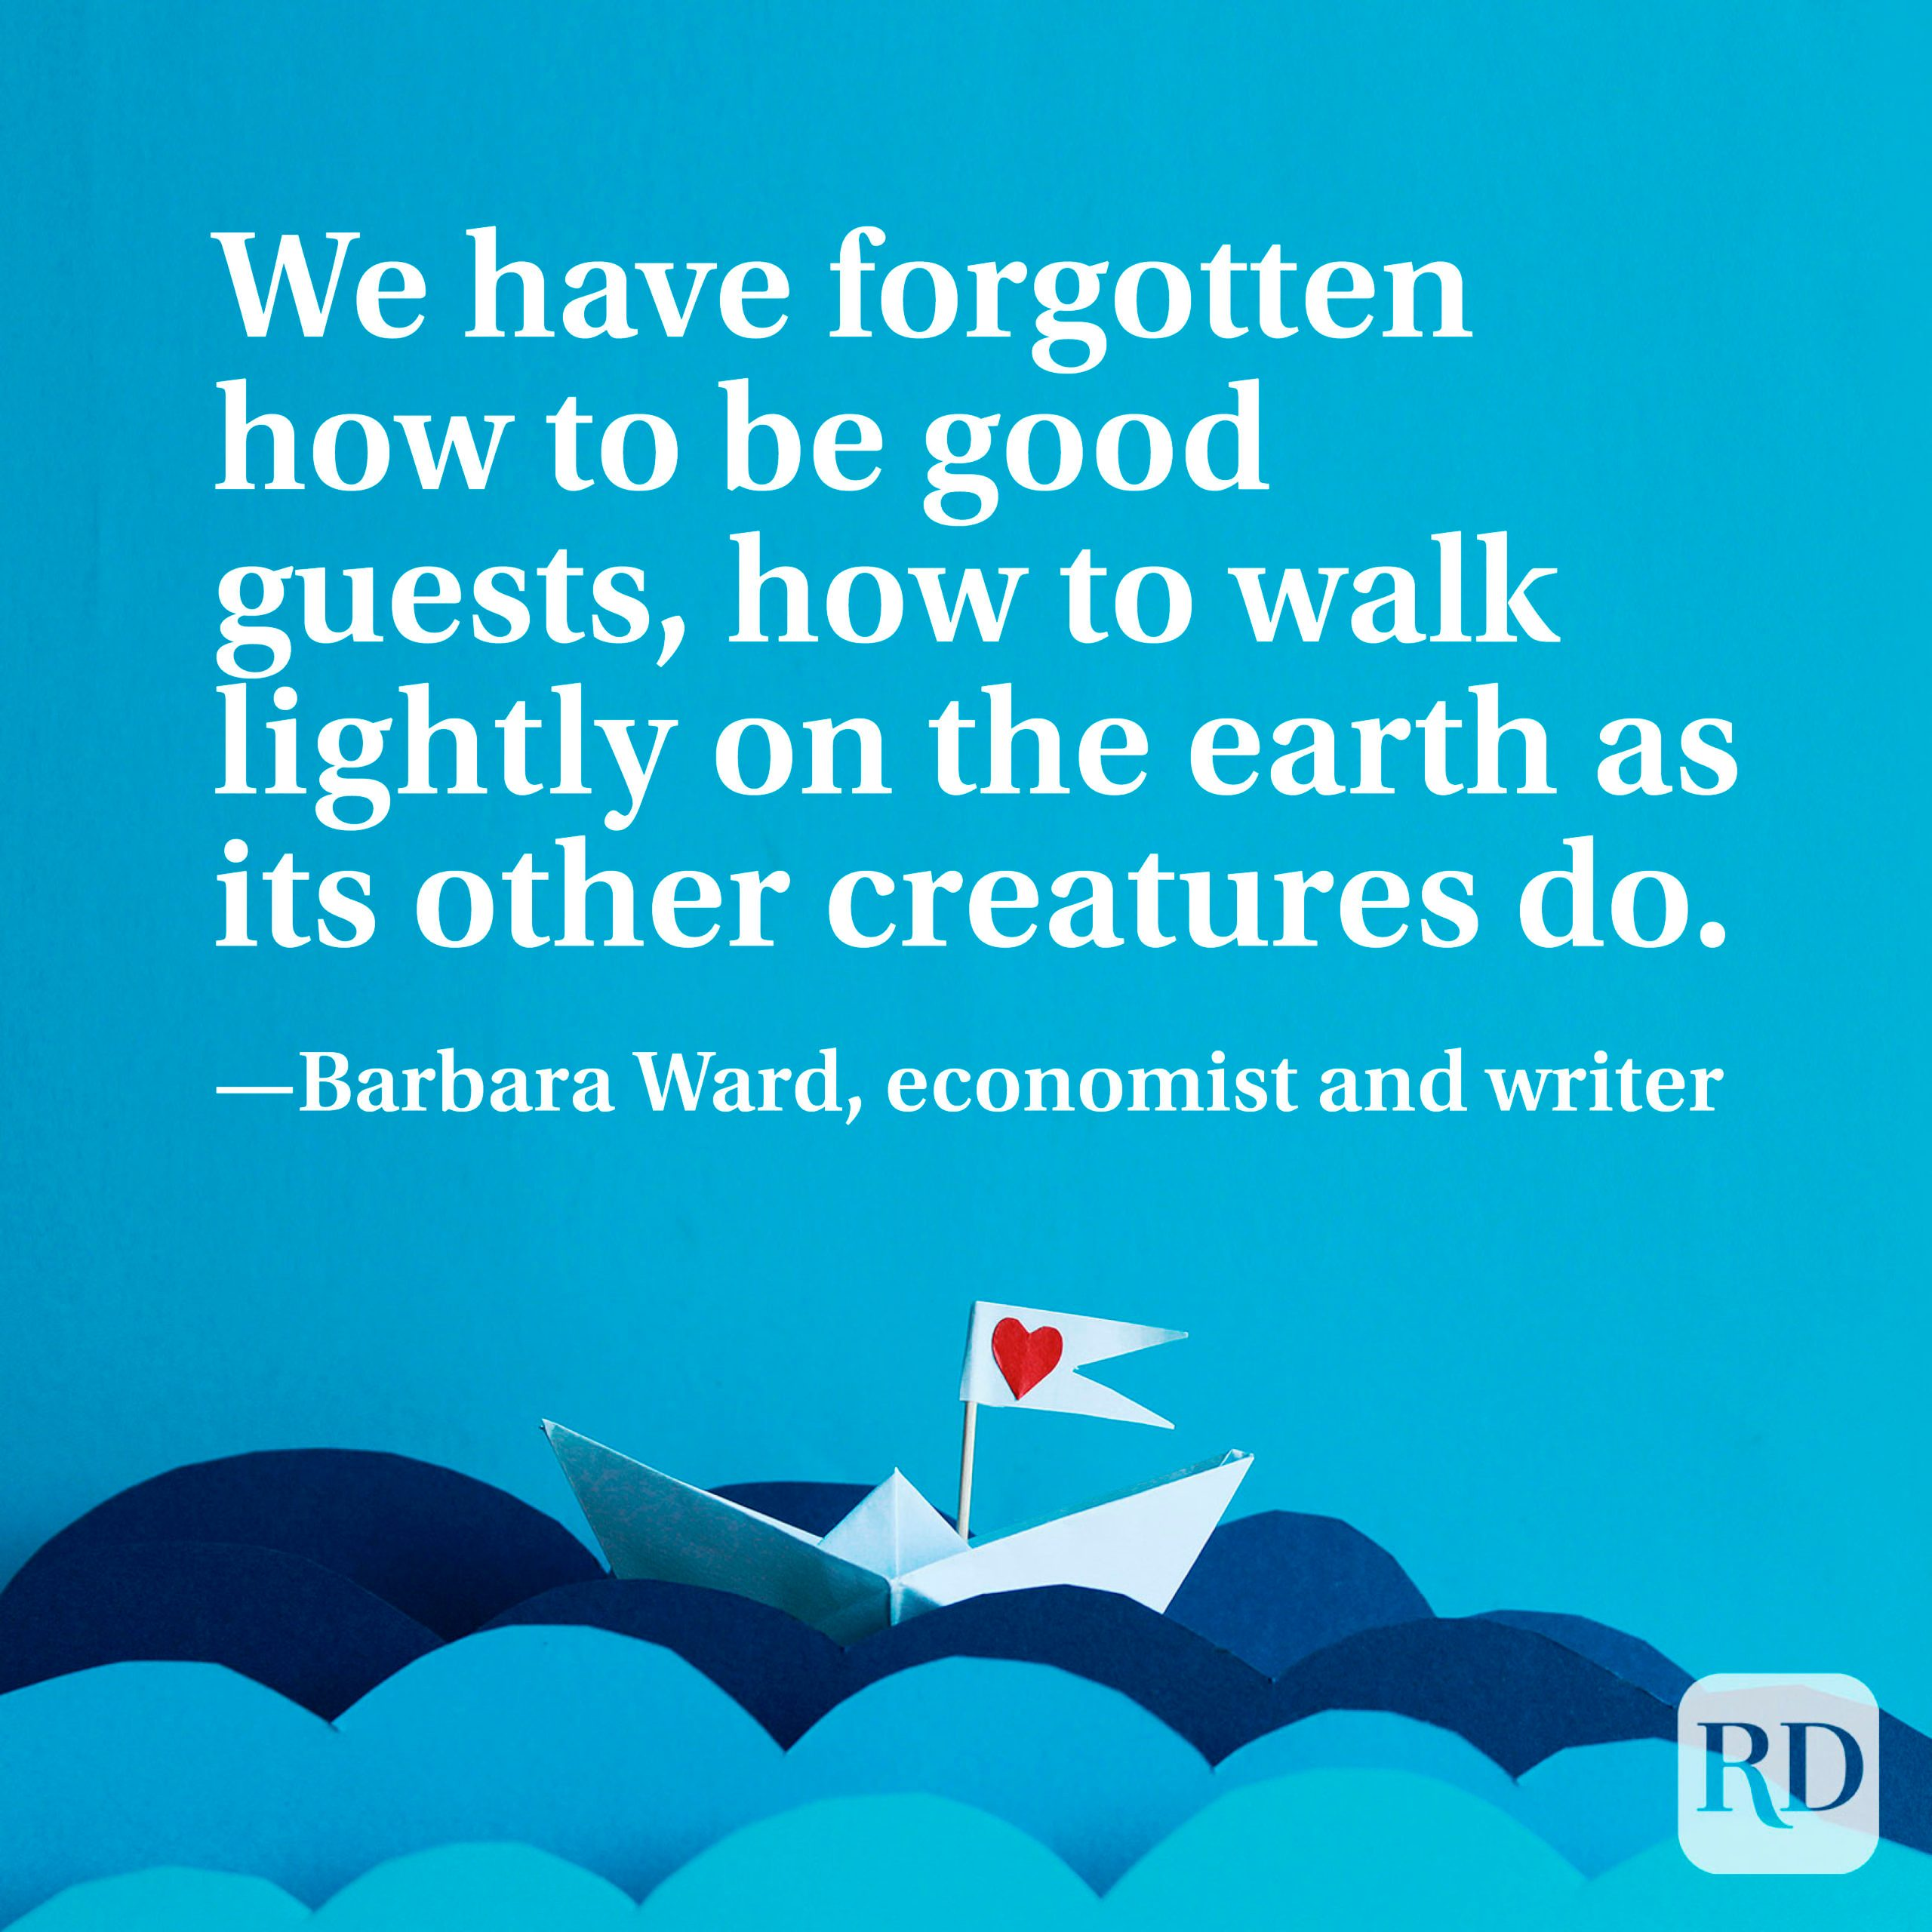 """""""We have forgotten how to be good guests, how to walk lightly on the earth as its other creatures do."""" —Barbara Ward, economist and writer"""